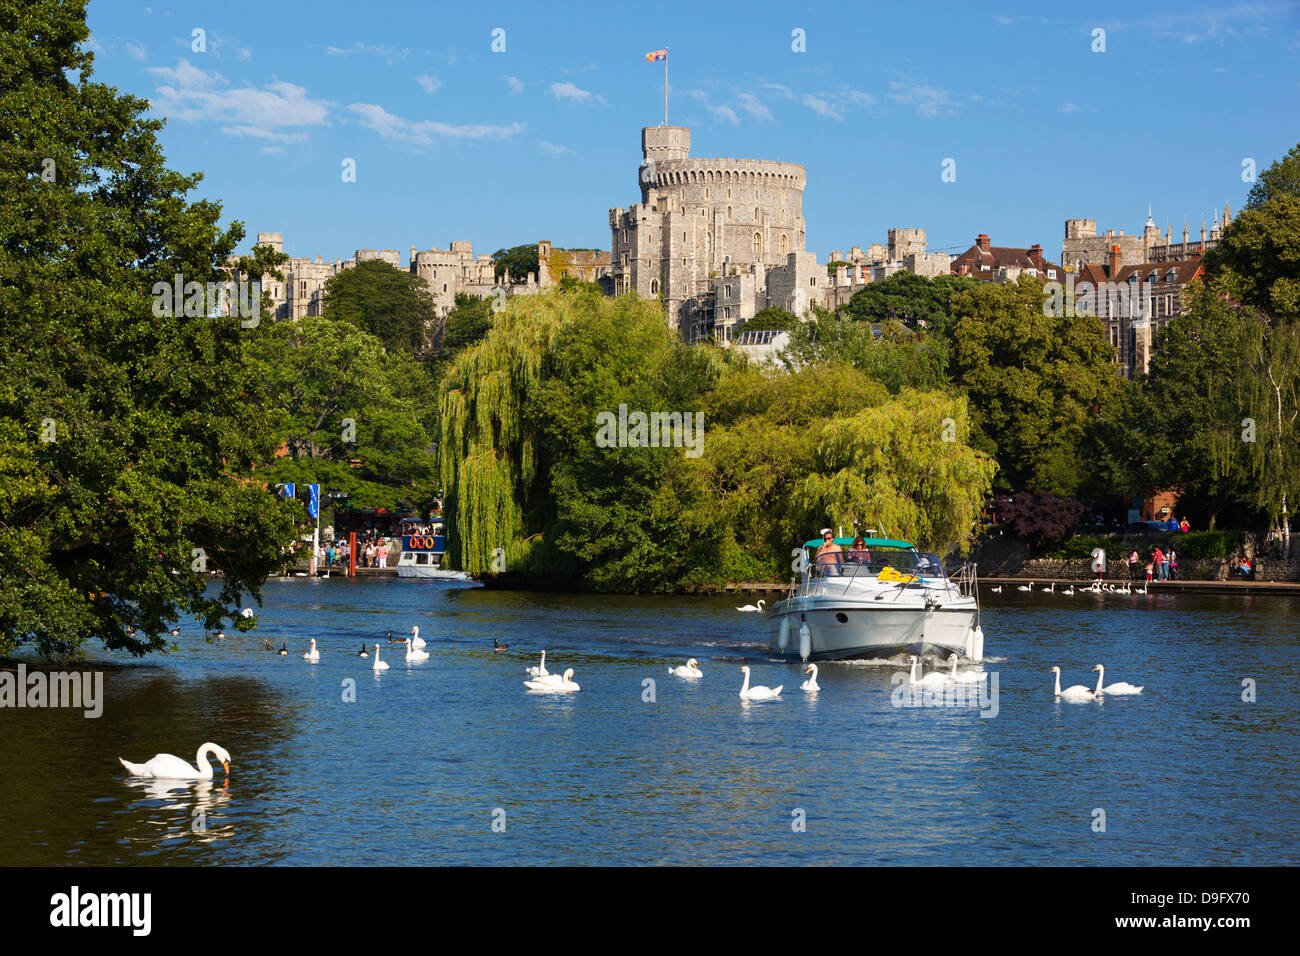 Windsor Castle and River Thames, Windsor, Berkshire, England, UK - Stock Image